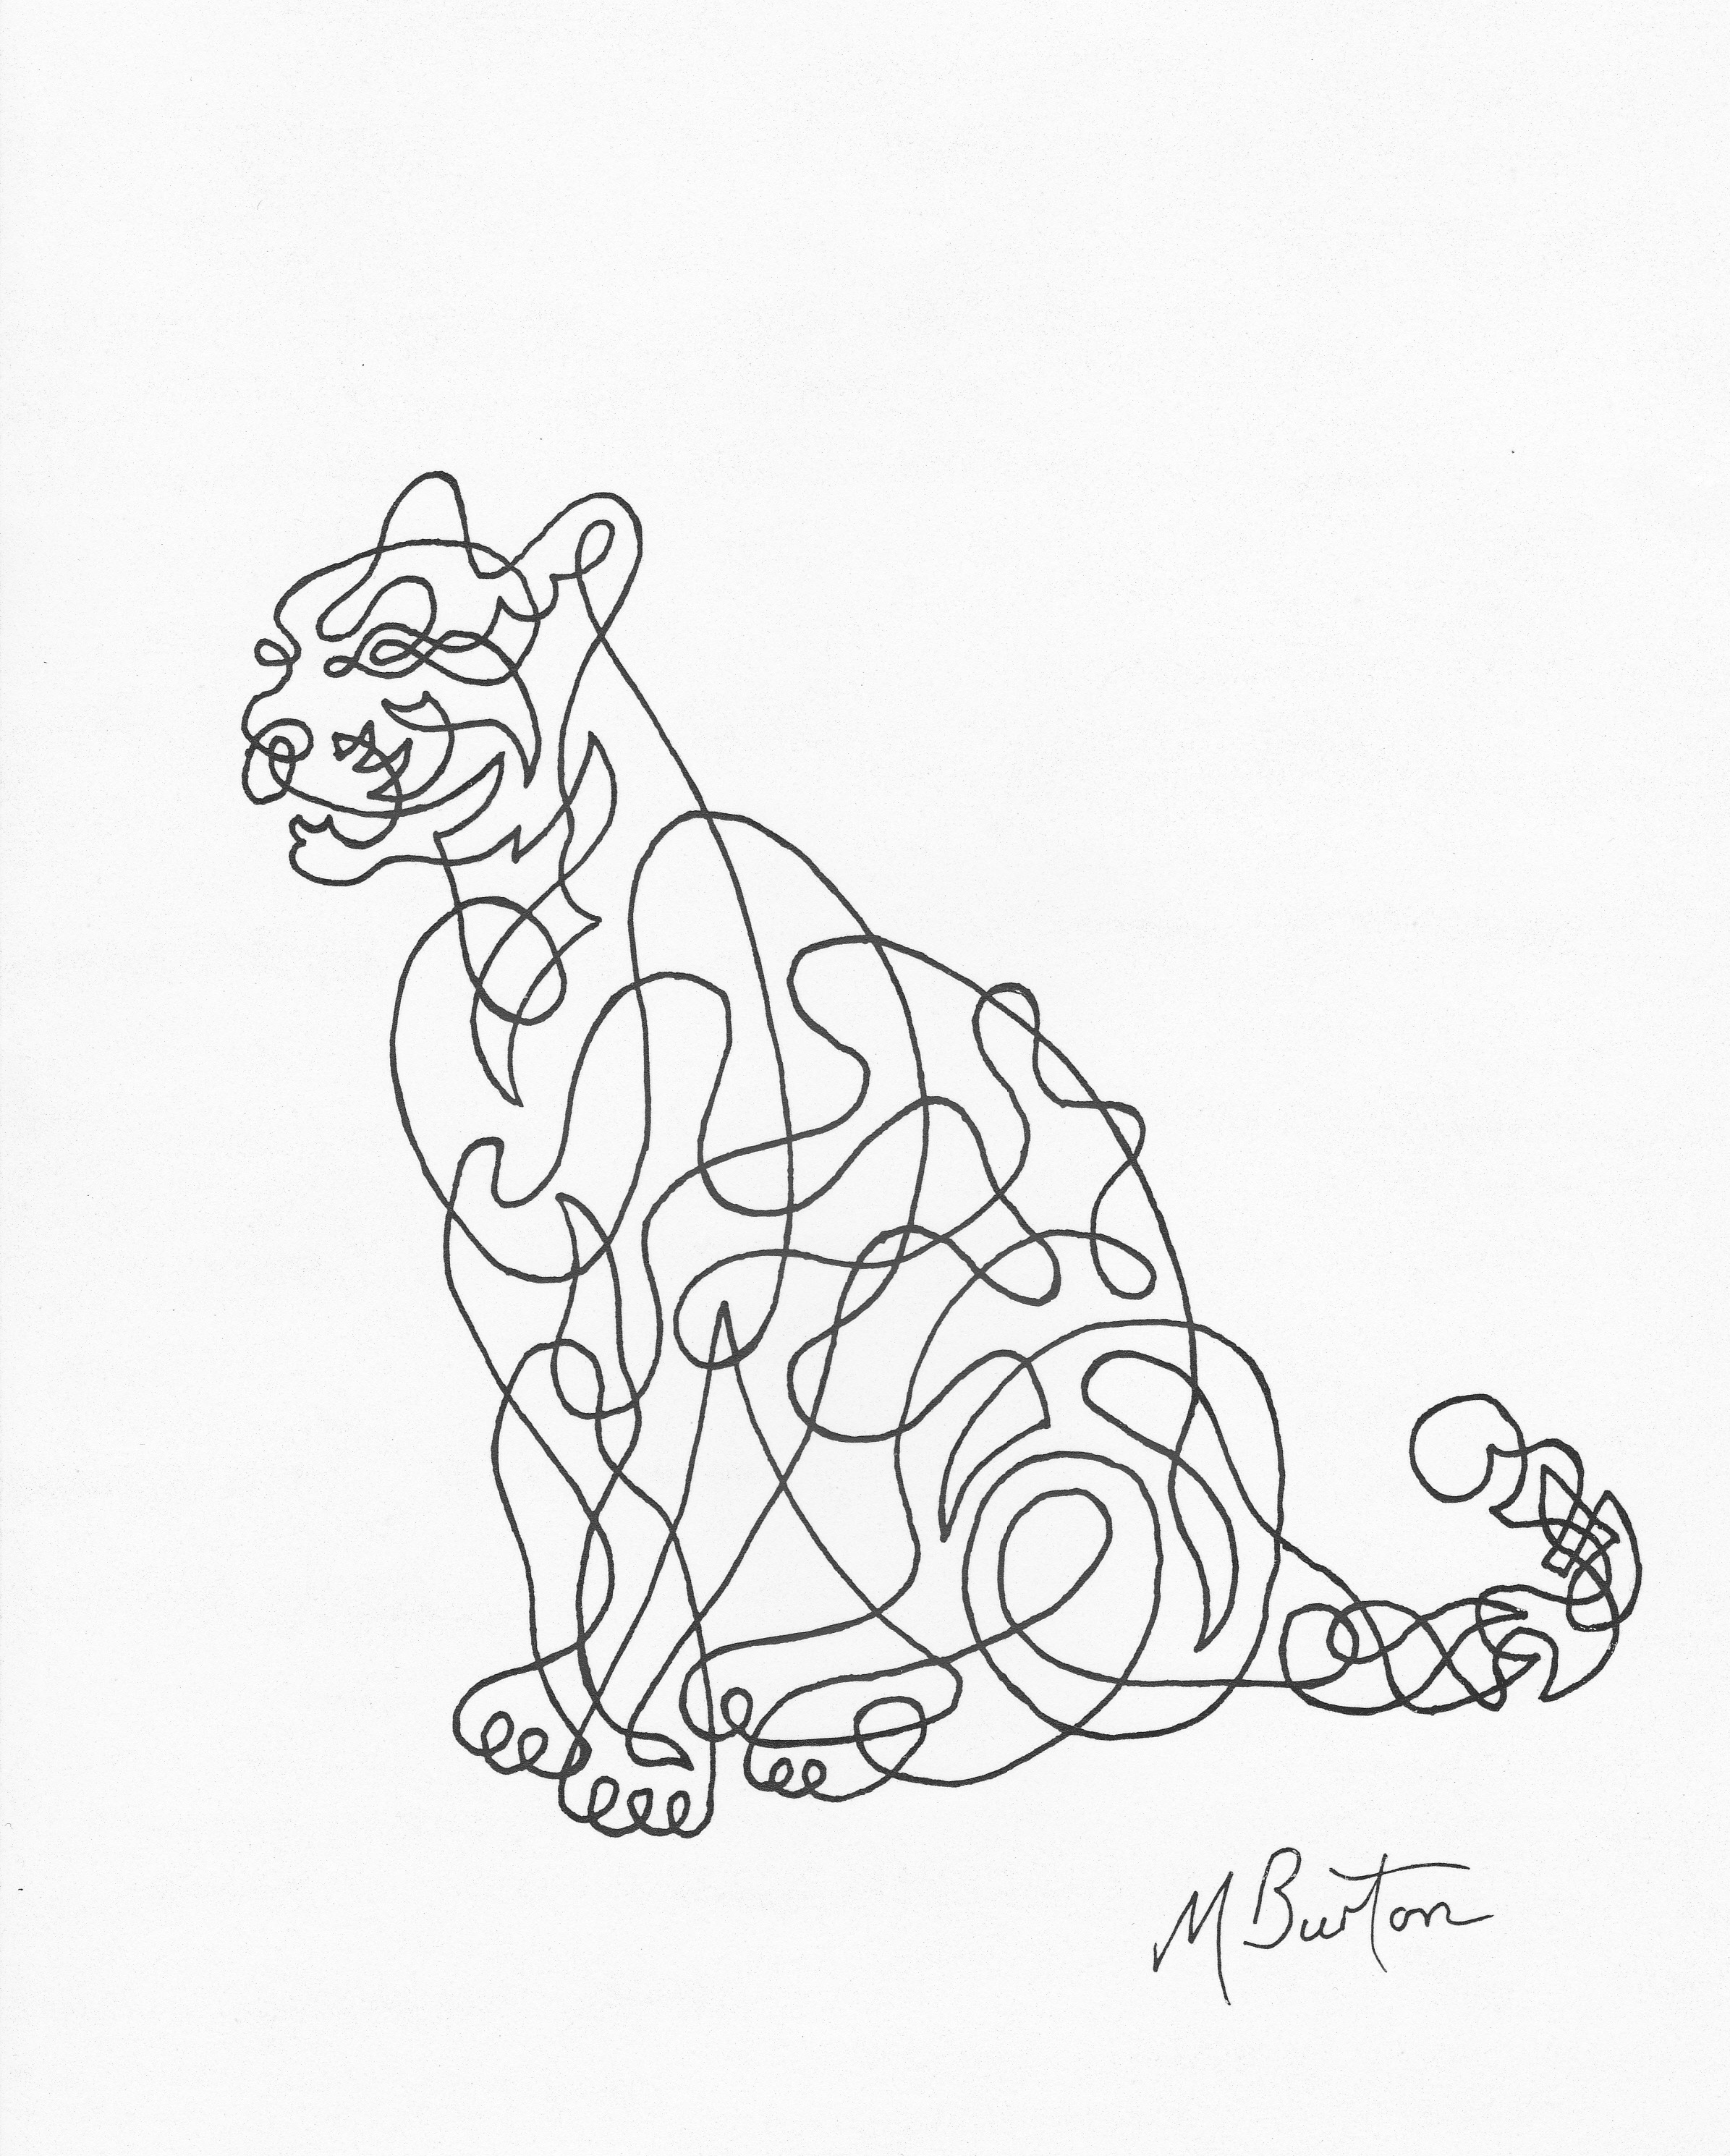 Line Drawing Of Artist : Association of animal artists mick burton